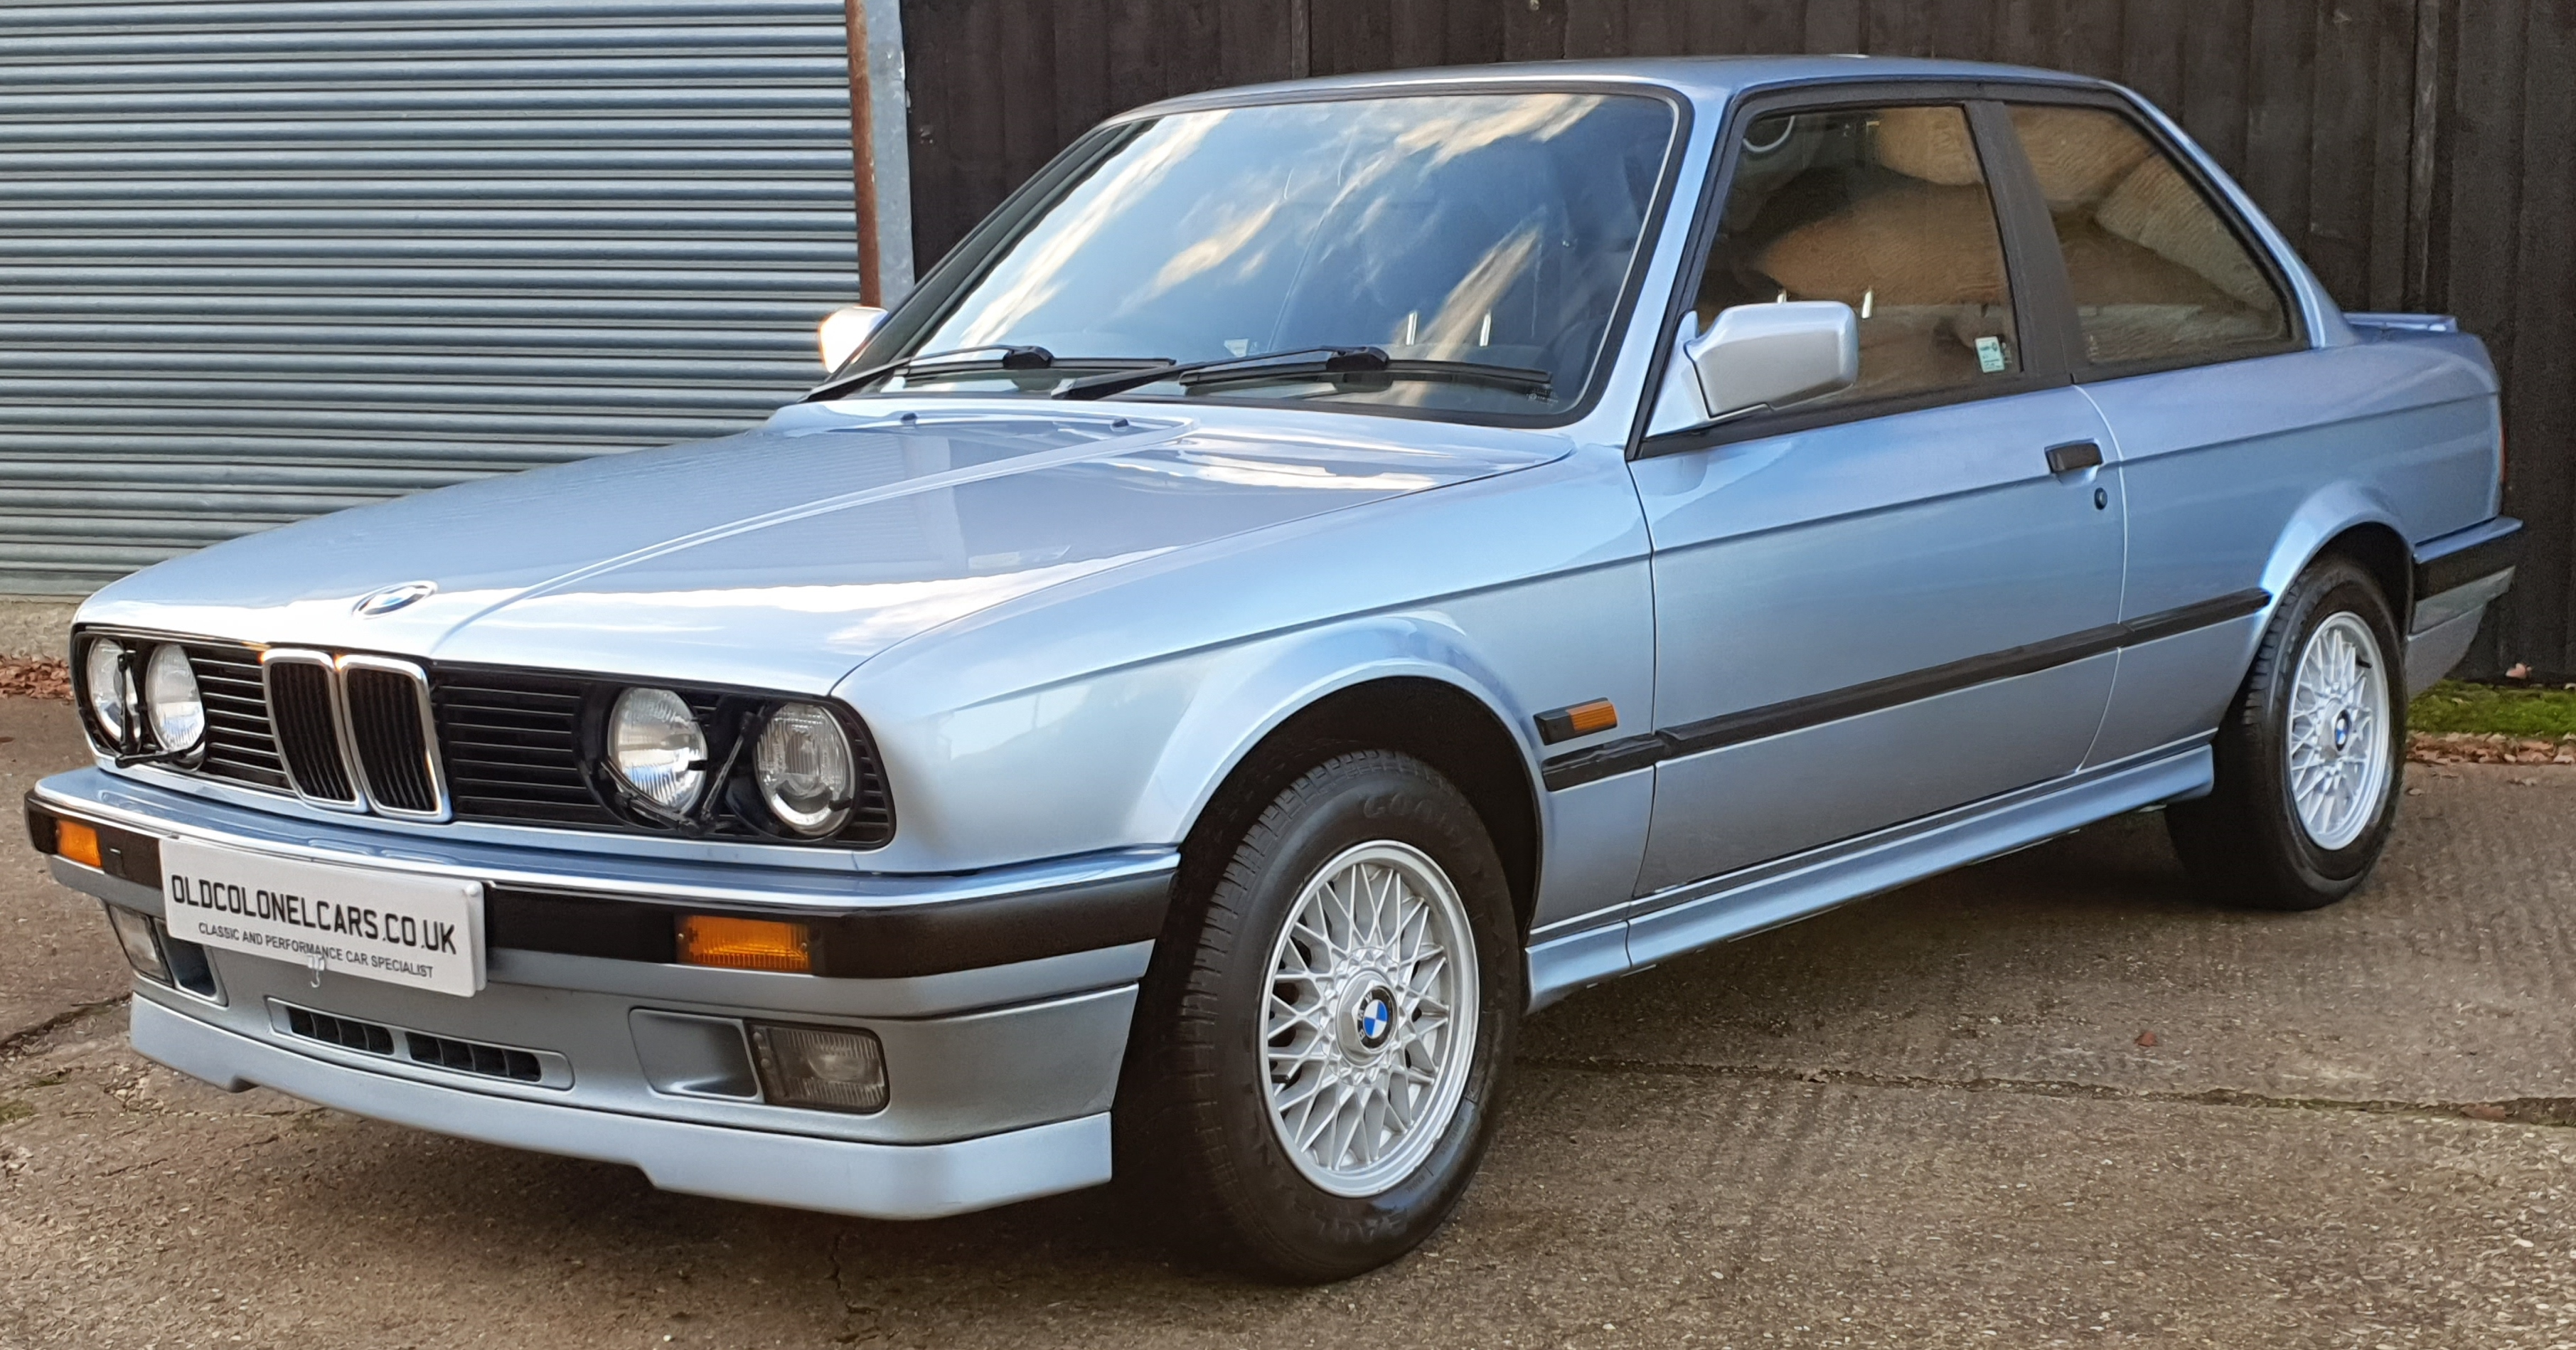 Bmw E30 325 Se Coupe Switchable Auto Old Colonel Cars Old Colonel Cars